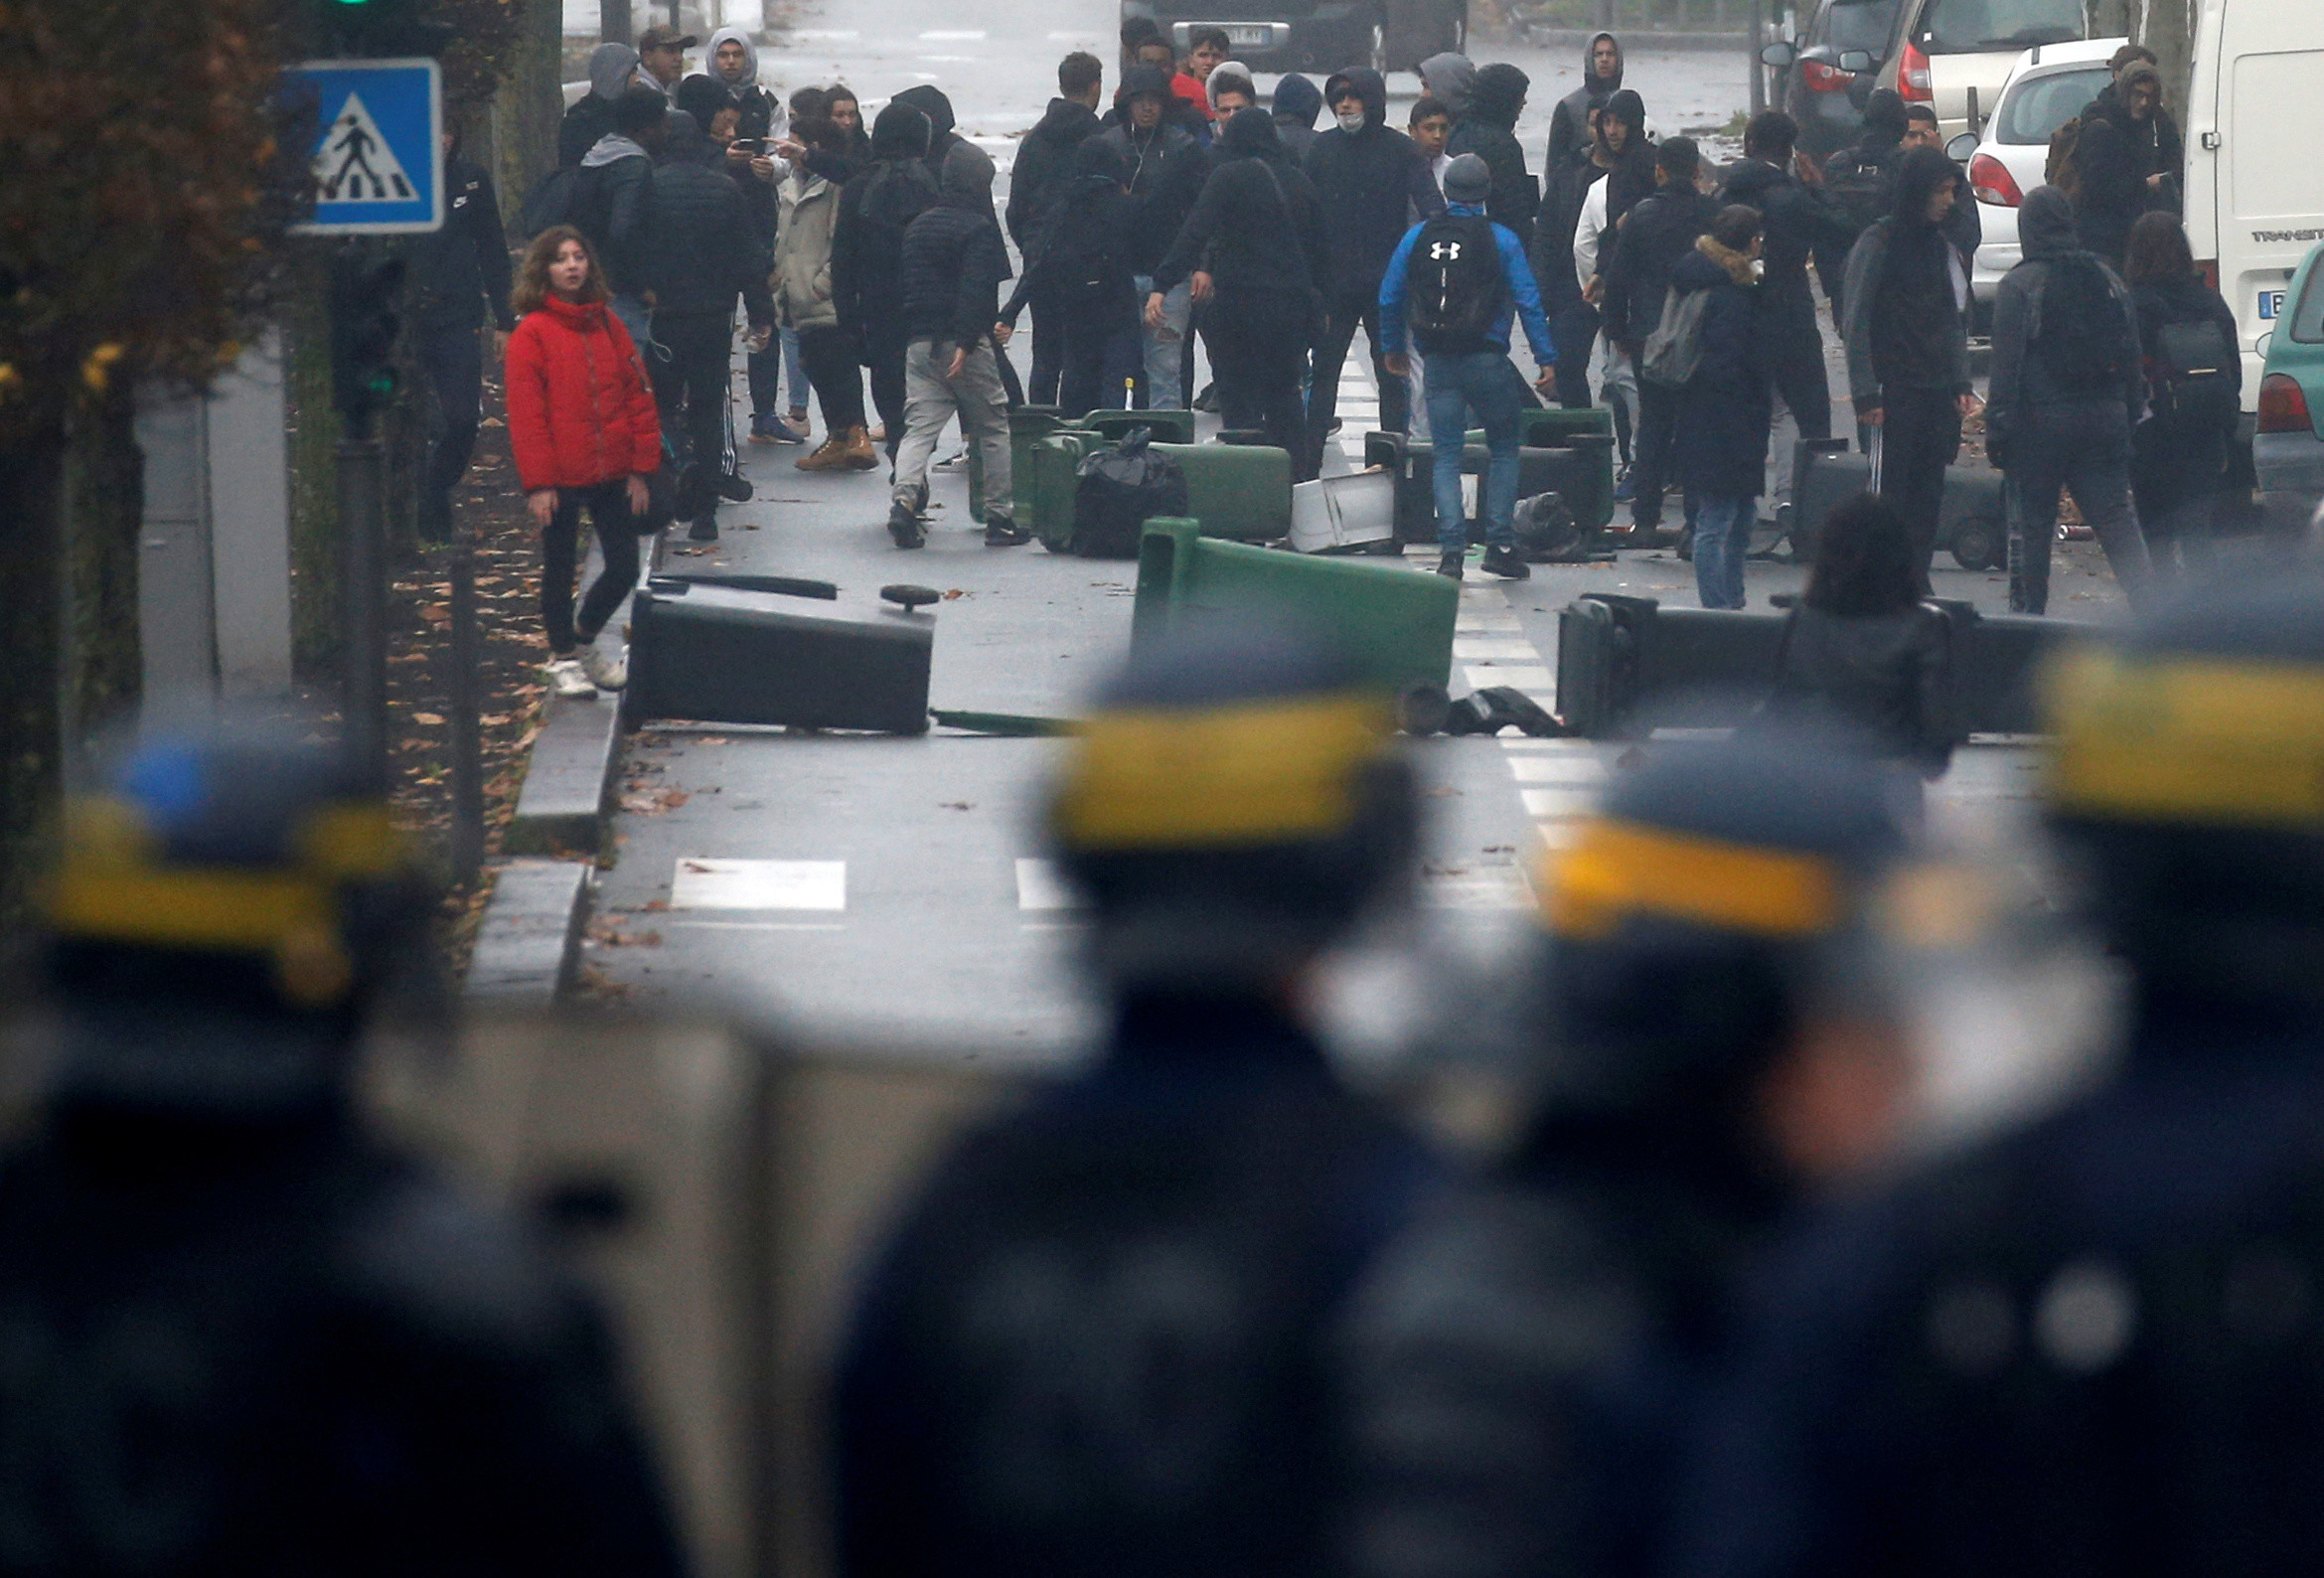 French riot police face off with youth and high school students during a protest against the French government's reform plan, in Bordeaux, France, December 6, 2018. REUTERS/Regis Duvignau - RC1C81AA5E00